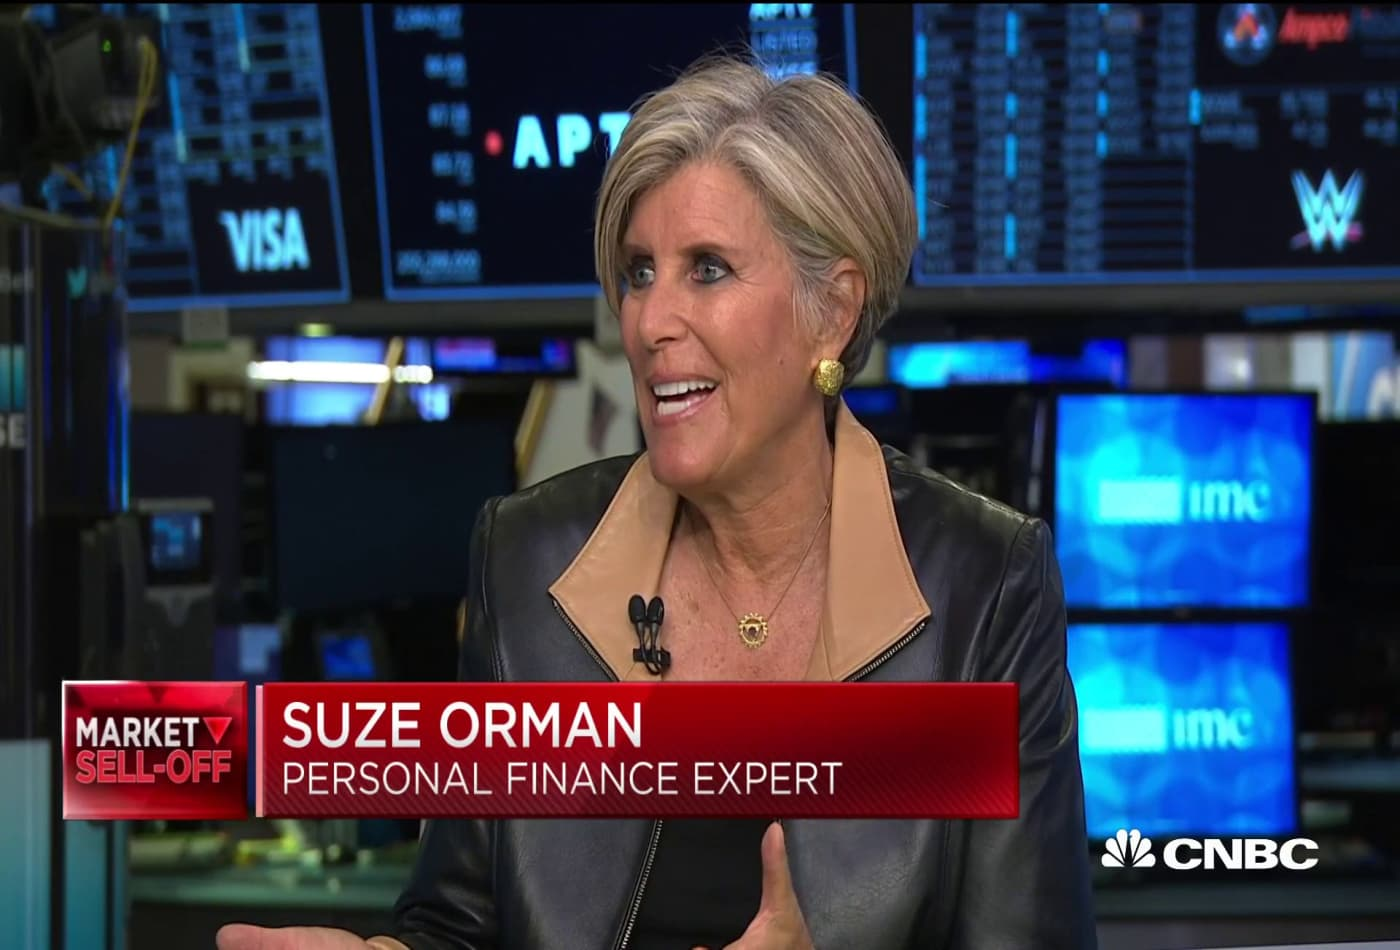 People should 'rejoice' at the Dow dip, says Suze Orman